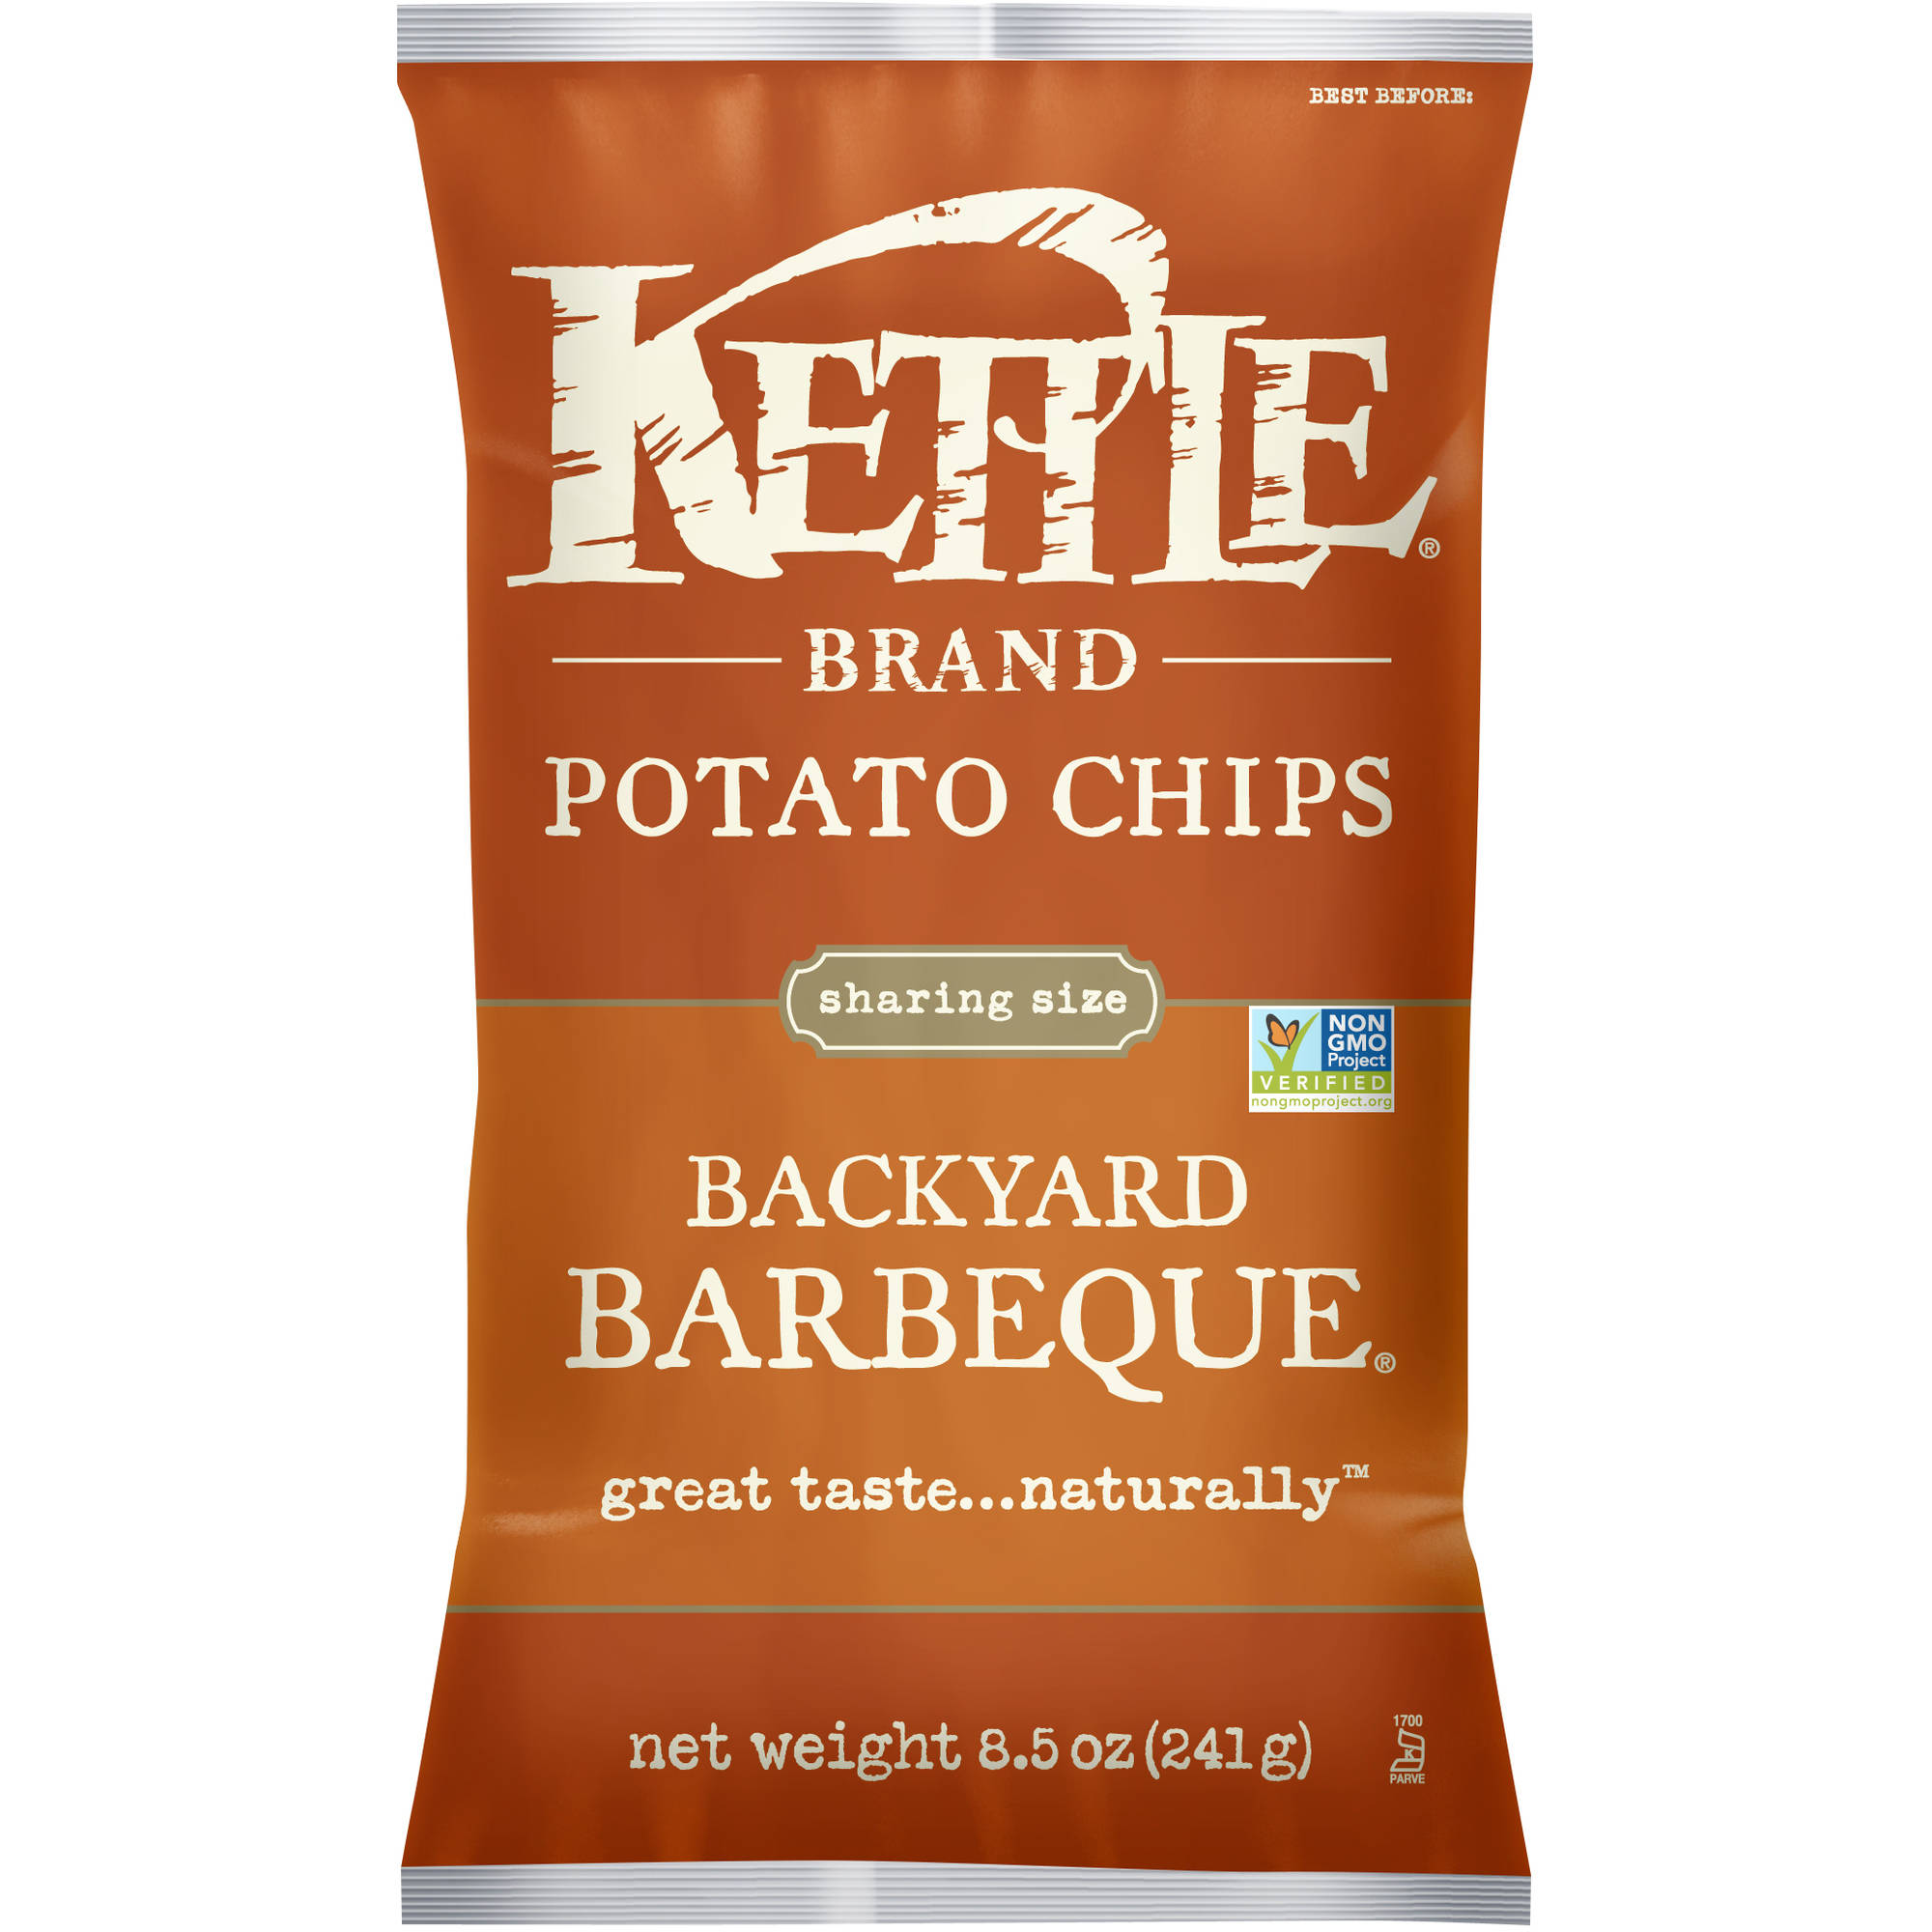 Kettle Brand Backyard Barbeque Potato Chips, 8.5 oz